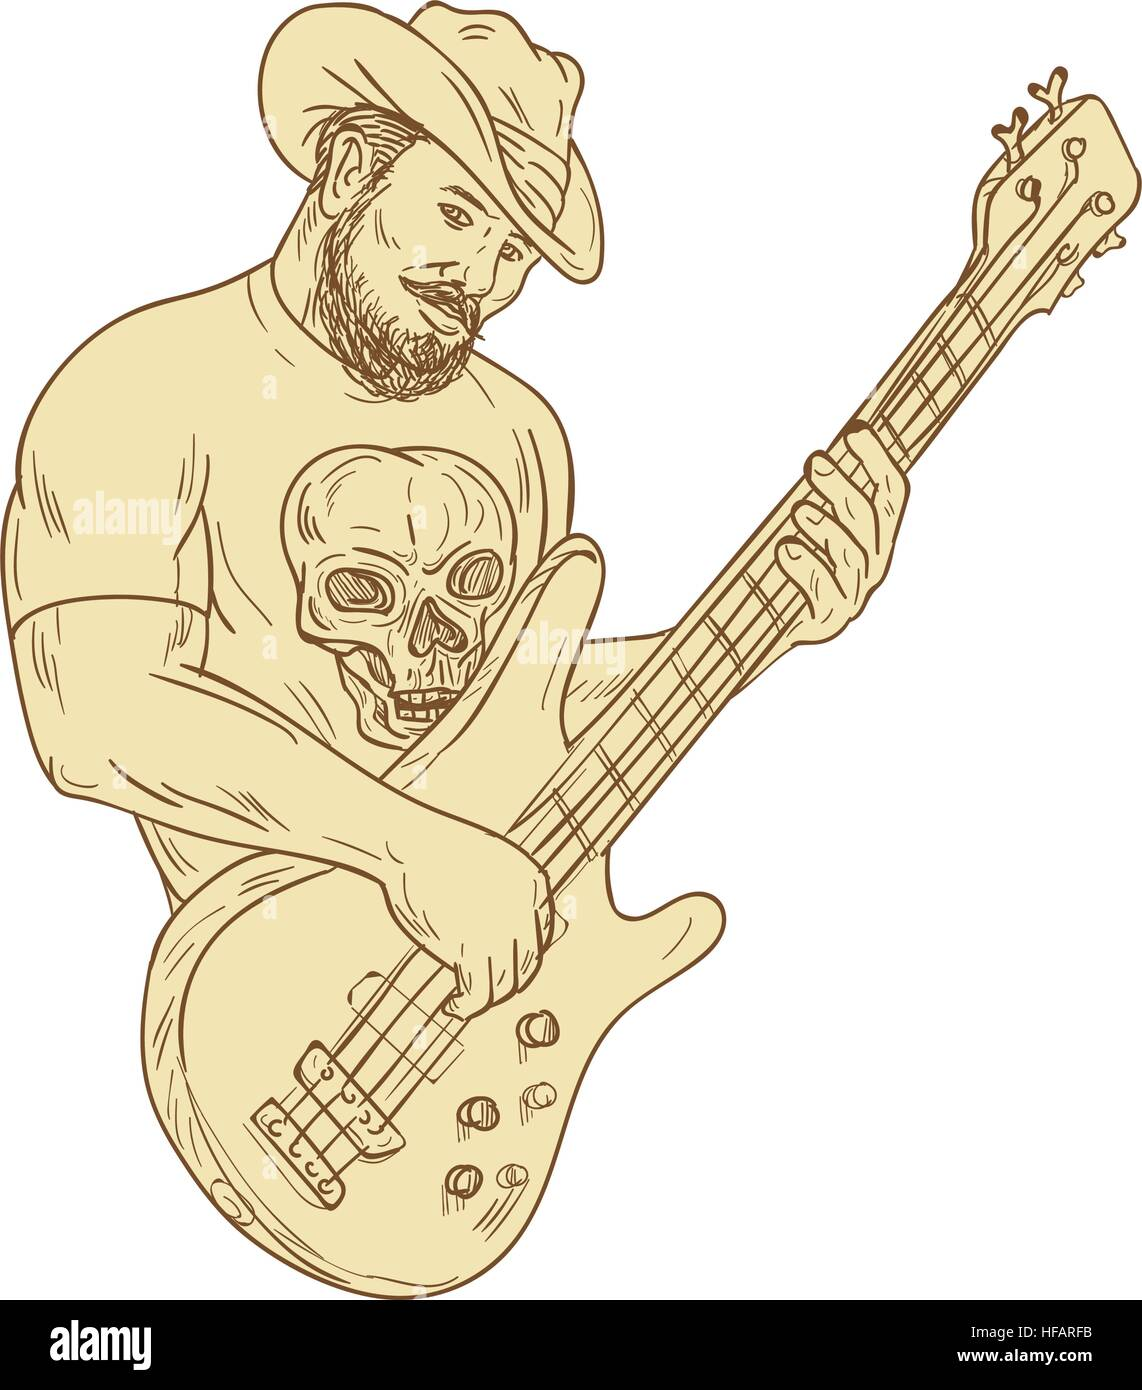 Drawing Sketch Style Illustration Of A Bearded Cowboy Wearing Hat Holding Playing Bass Guitar Viewed From